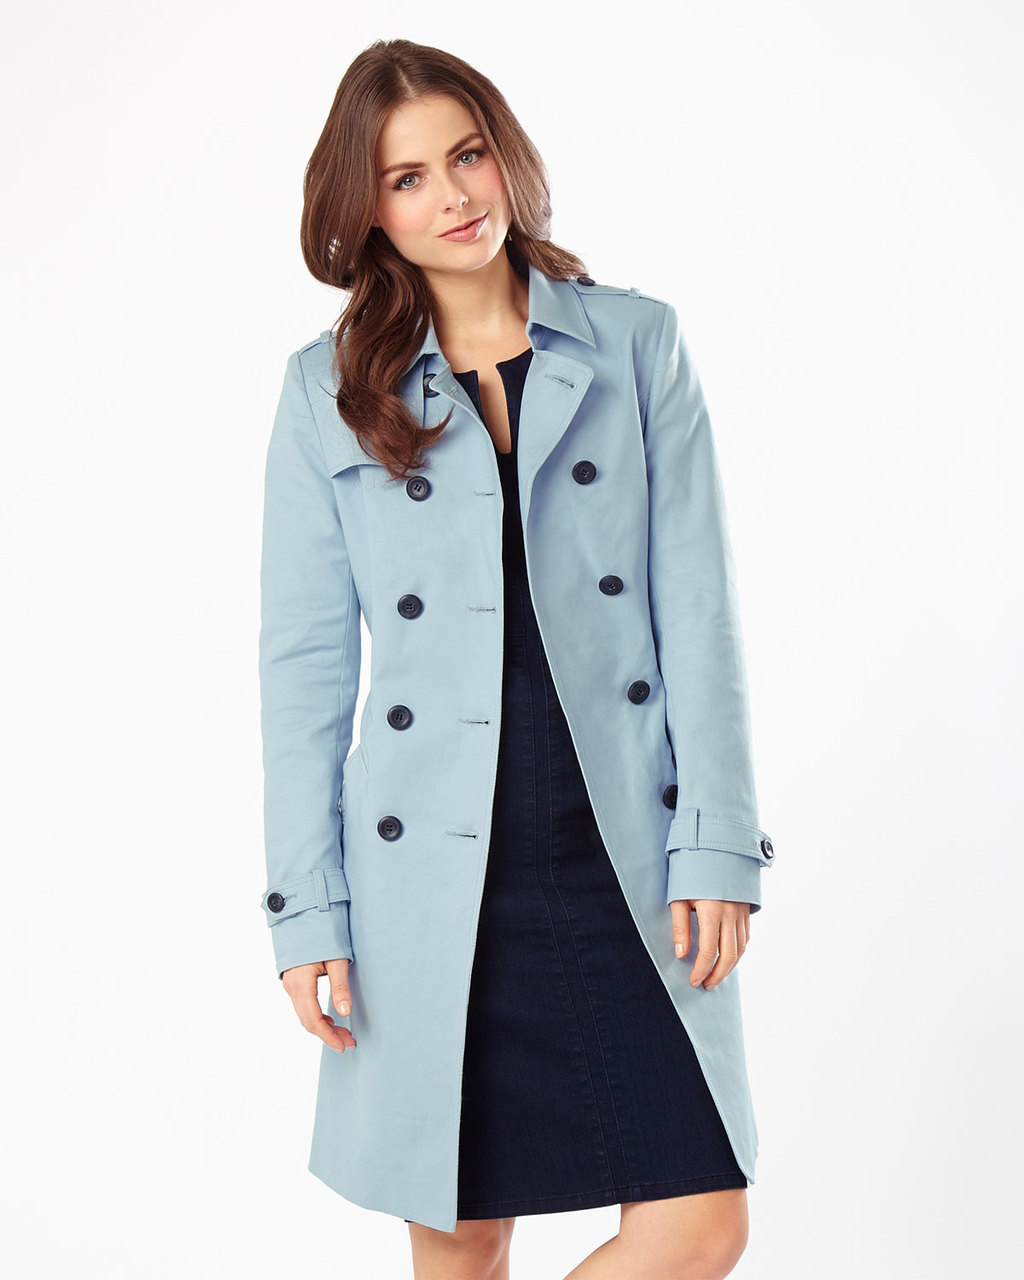 Tabatha Trench Coat - pattern: plain; style: trench coat; length: on the knee; collar: standard lapel/rever collar; predominant colour: pale blue; occasions: casual, creative work; fit: tailored/fitted; fibres: cotton - stretch; sleeve length: long sleeve; sleeve style: standard; collar break: medium; pattern type: fabric; texture group: woven light midweight; season: s/s 2016; wardrobe: highlight